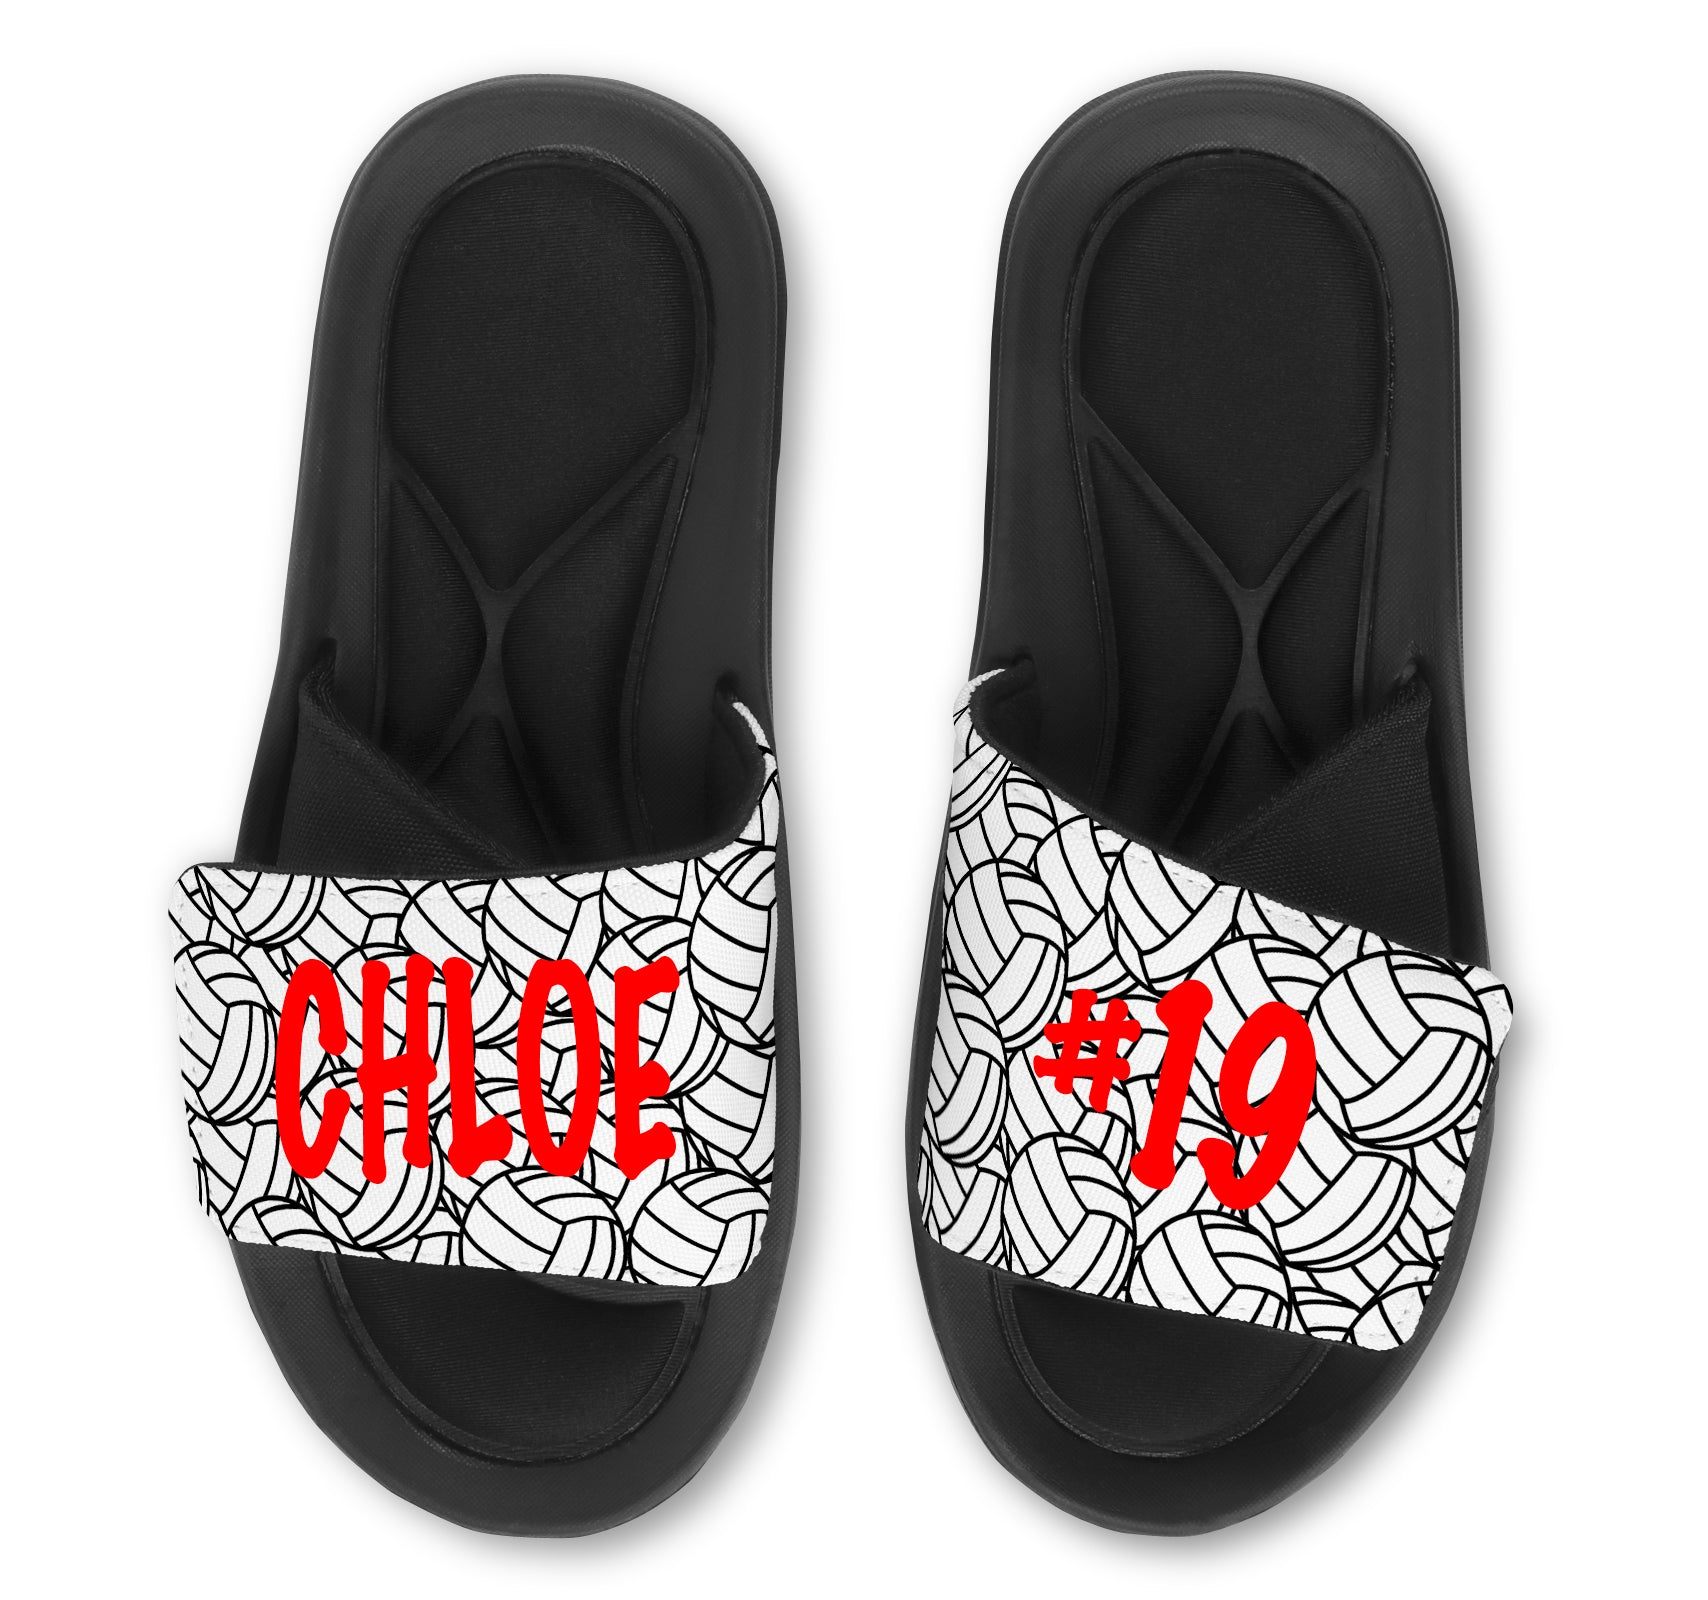 Volleyball Custom Slides / Sandals -Customize With Your Name Or Number!